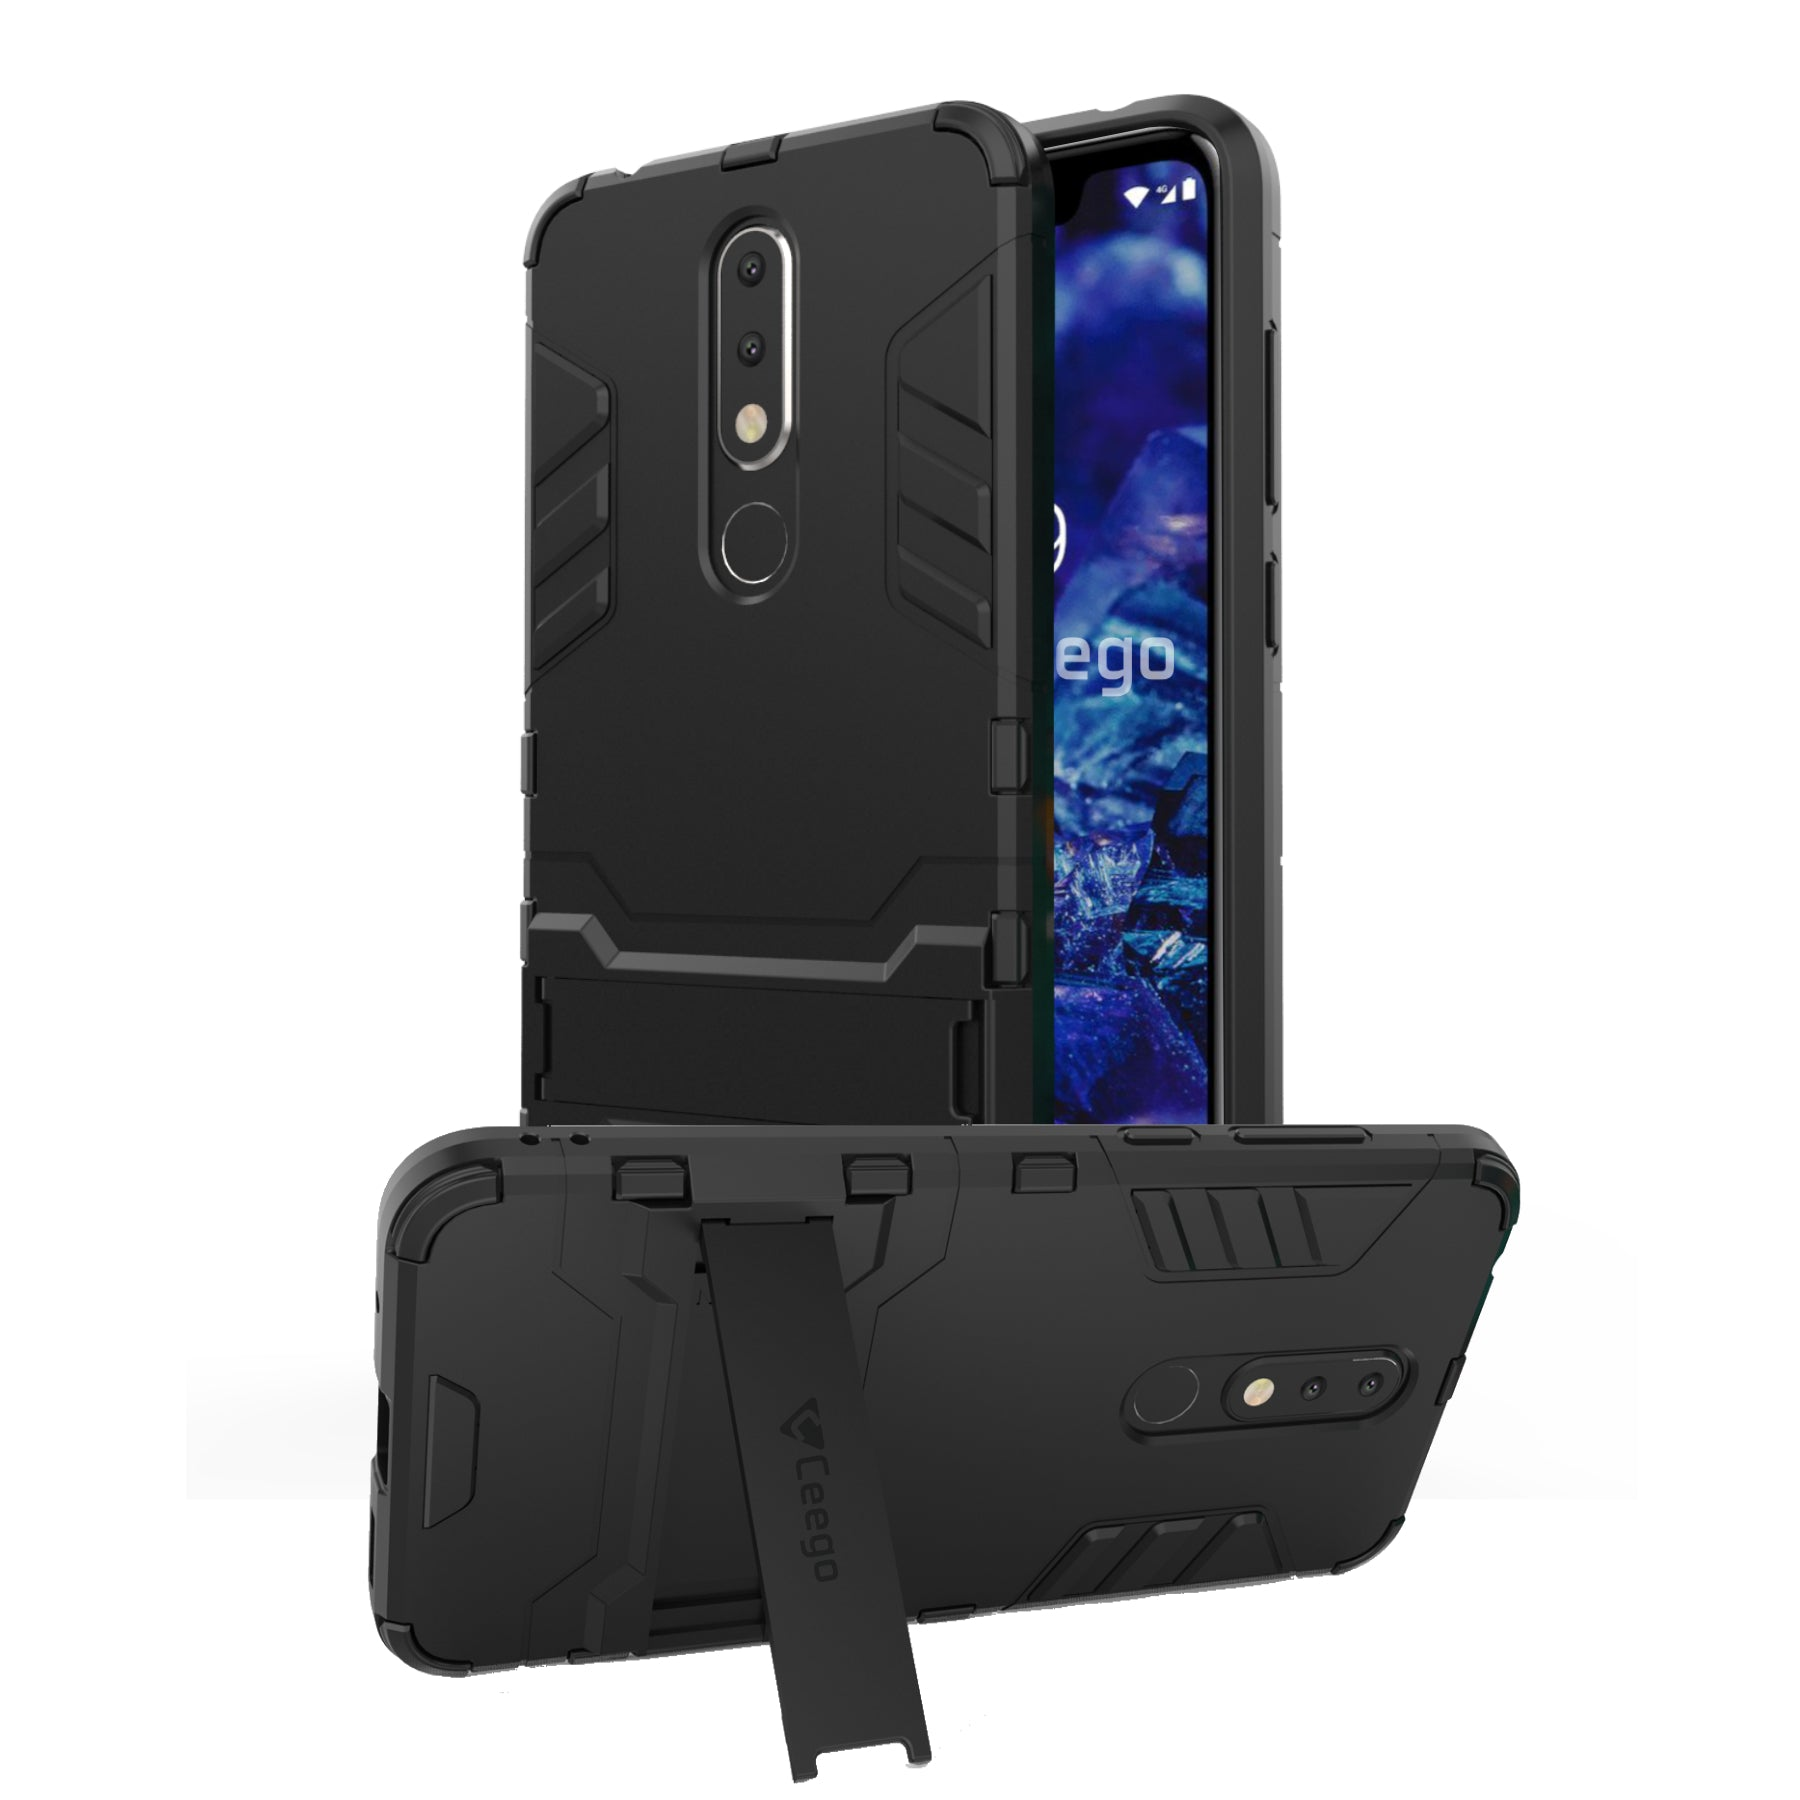 Ceego Stealth Defence Back Case for Nokia 5.1 Plus – Matte Black